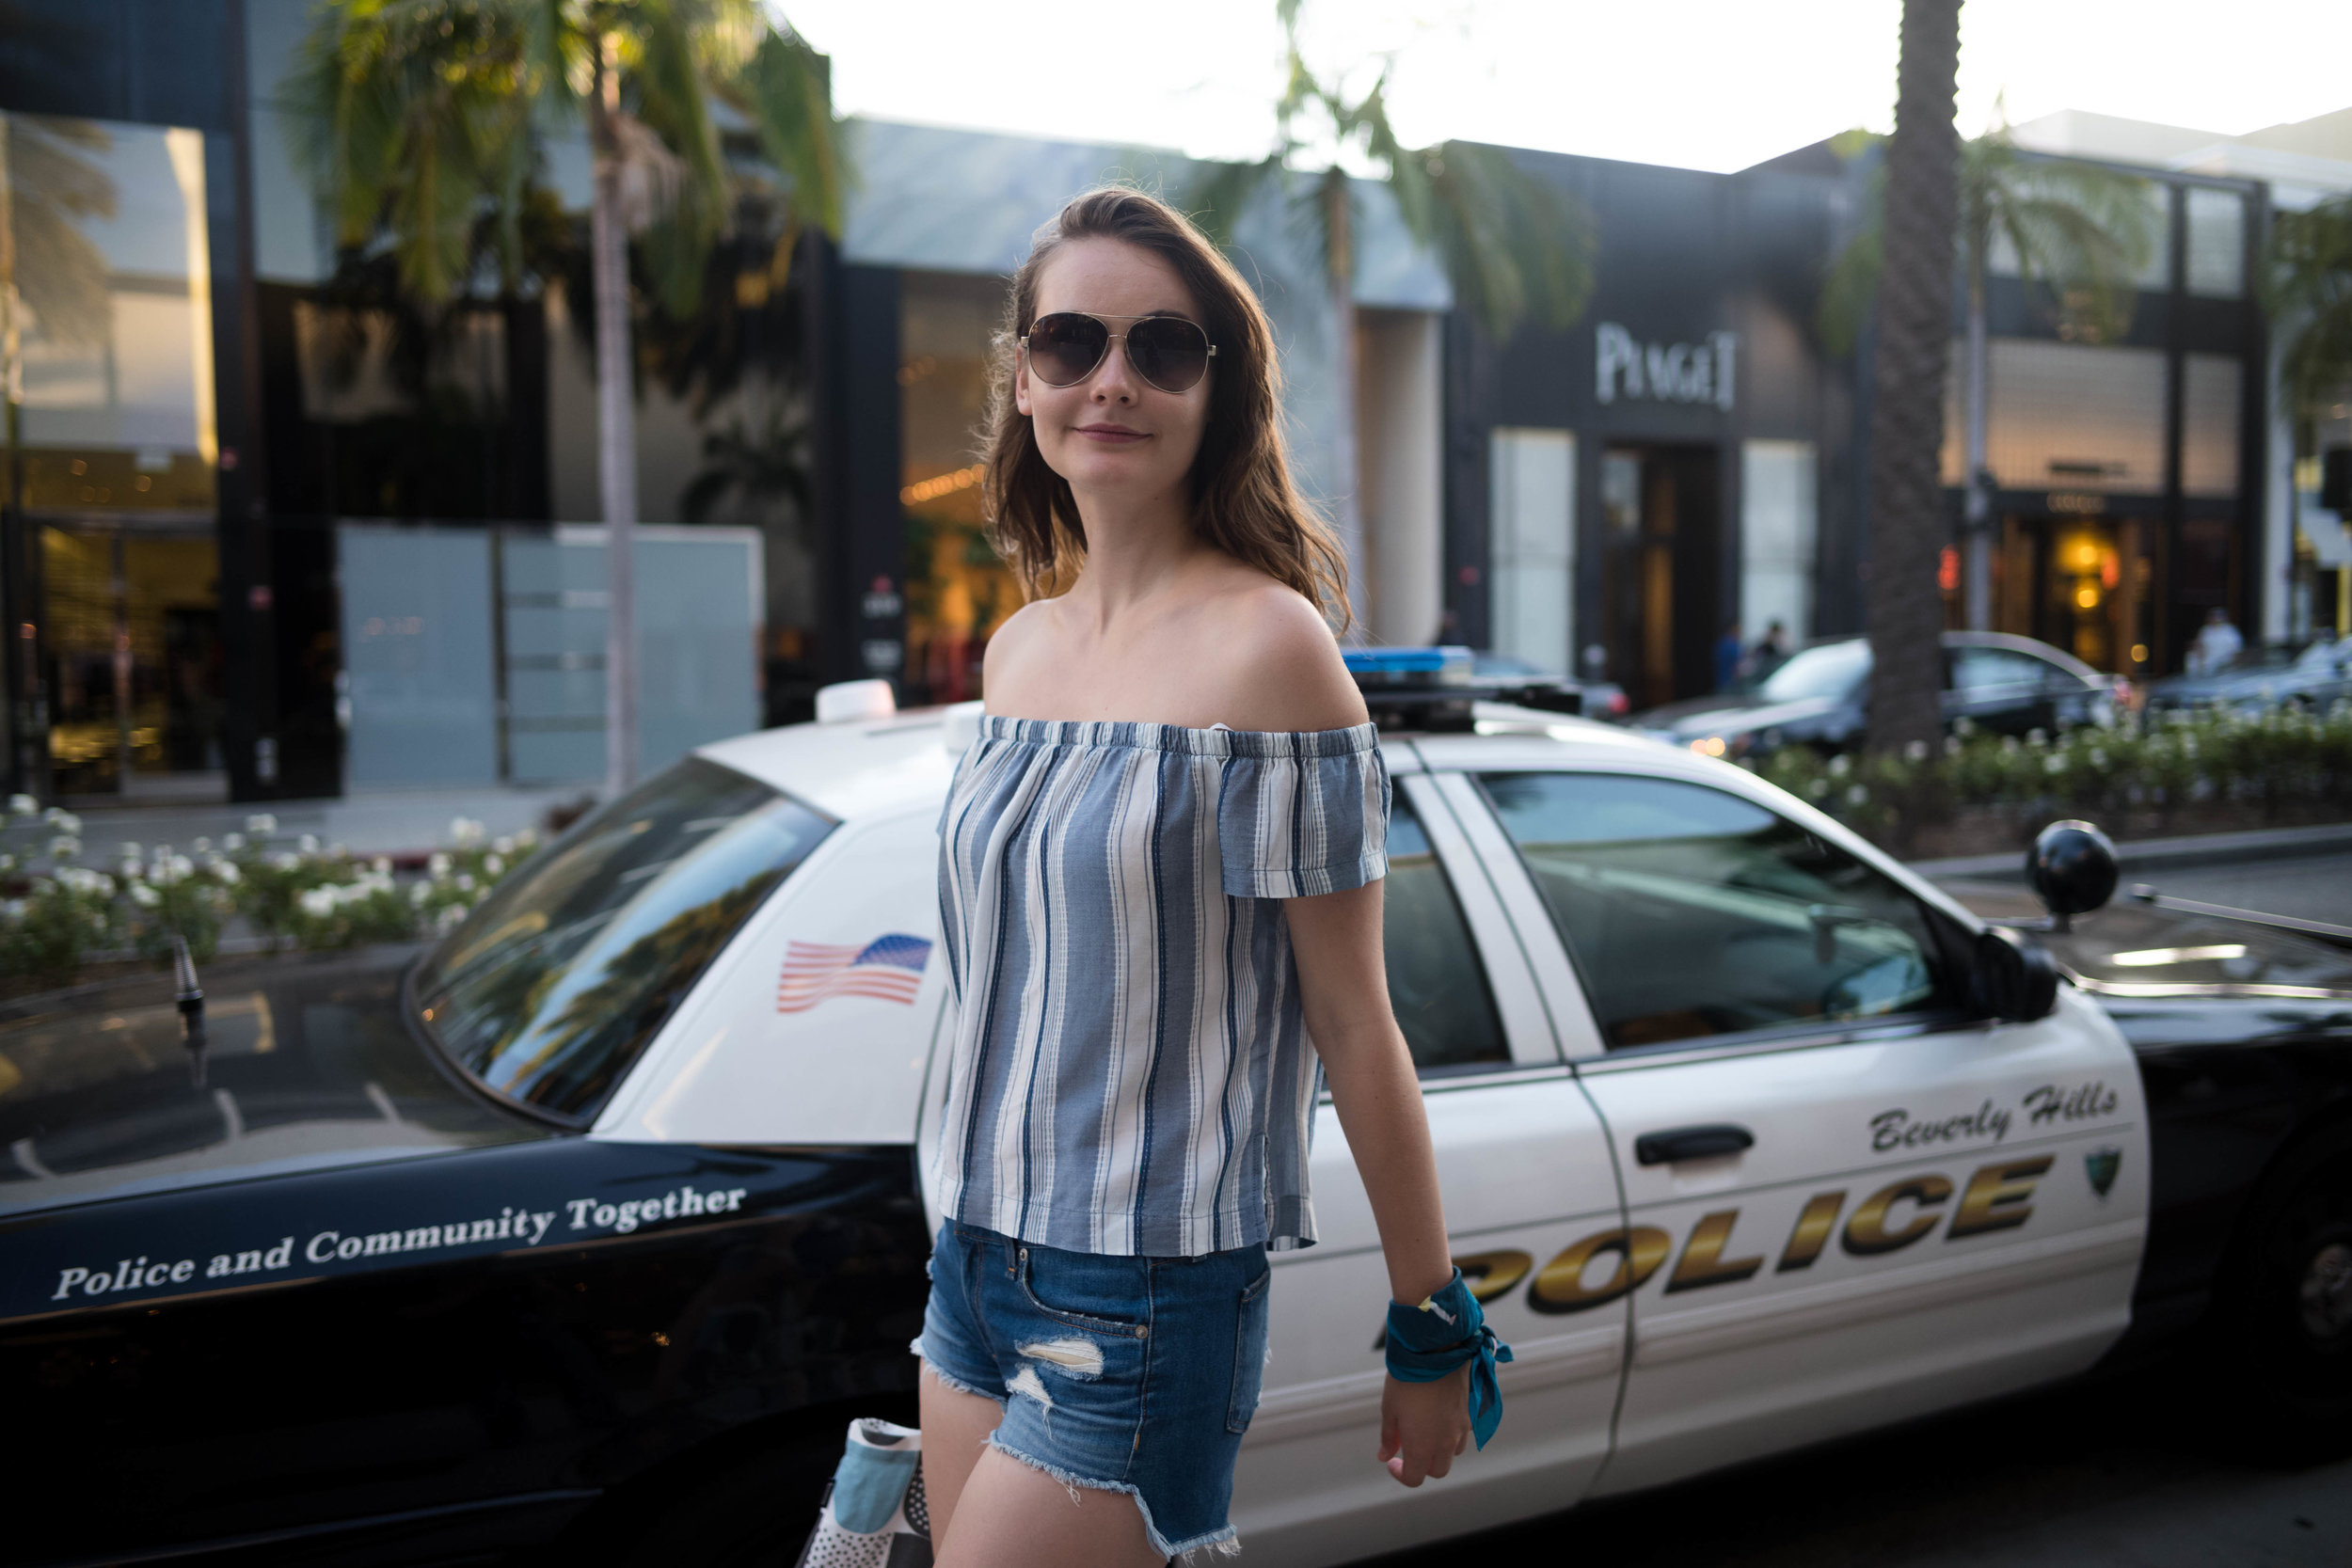 """Walking pass a police car on Rodeo Drive. Apparently, it reminds Anna of the video game """"Grand Theft Auto"""". Leica 28mm f/1.4 Summilux ASPH"""